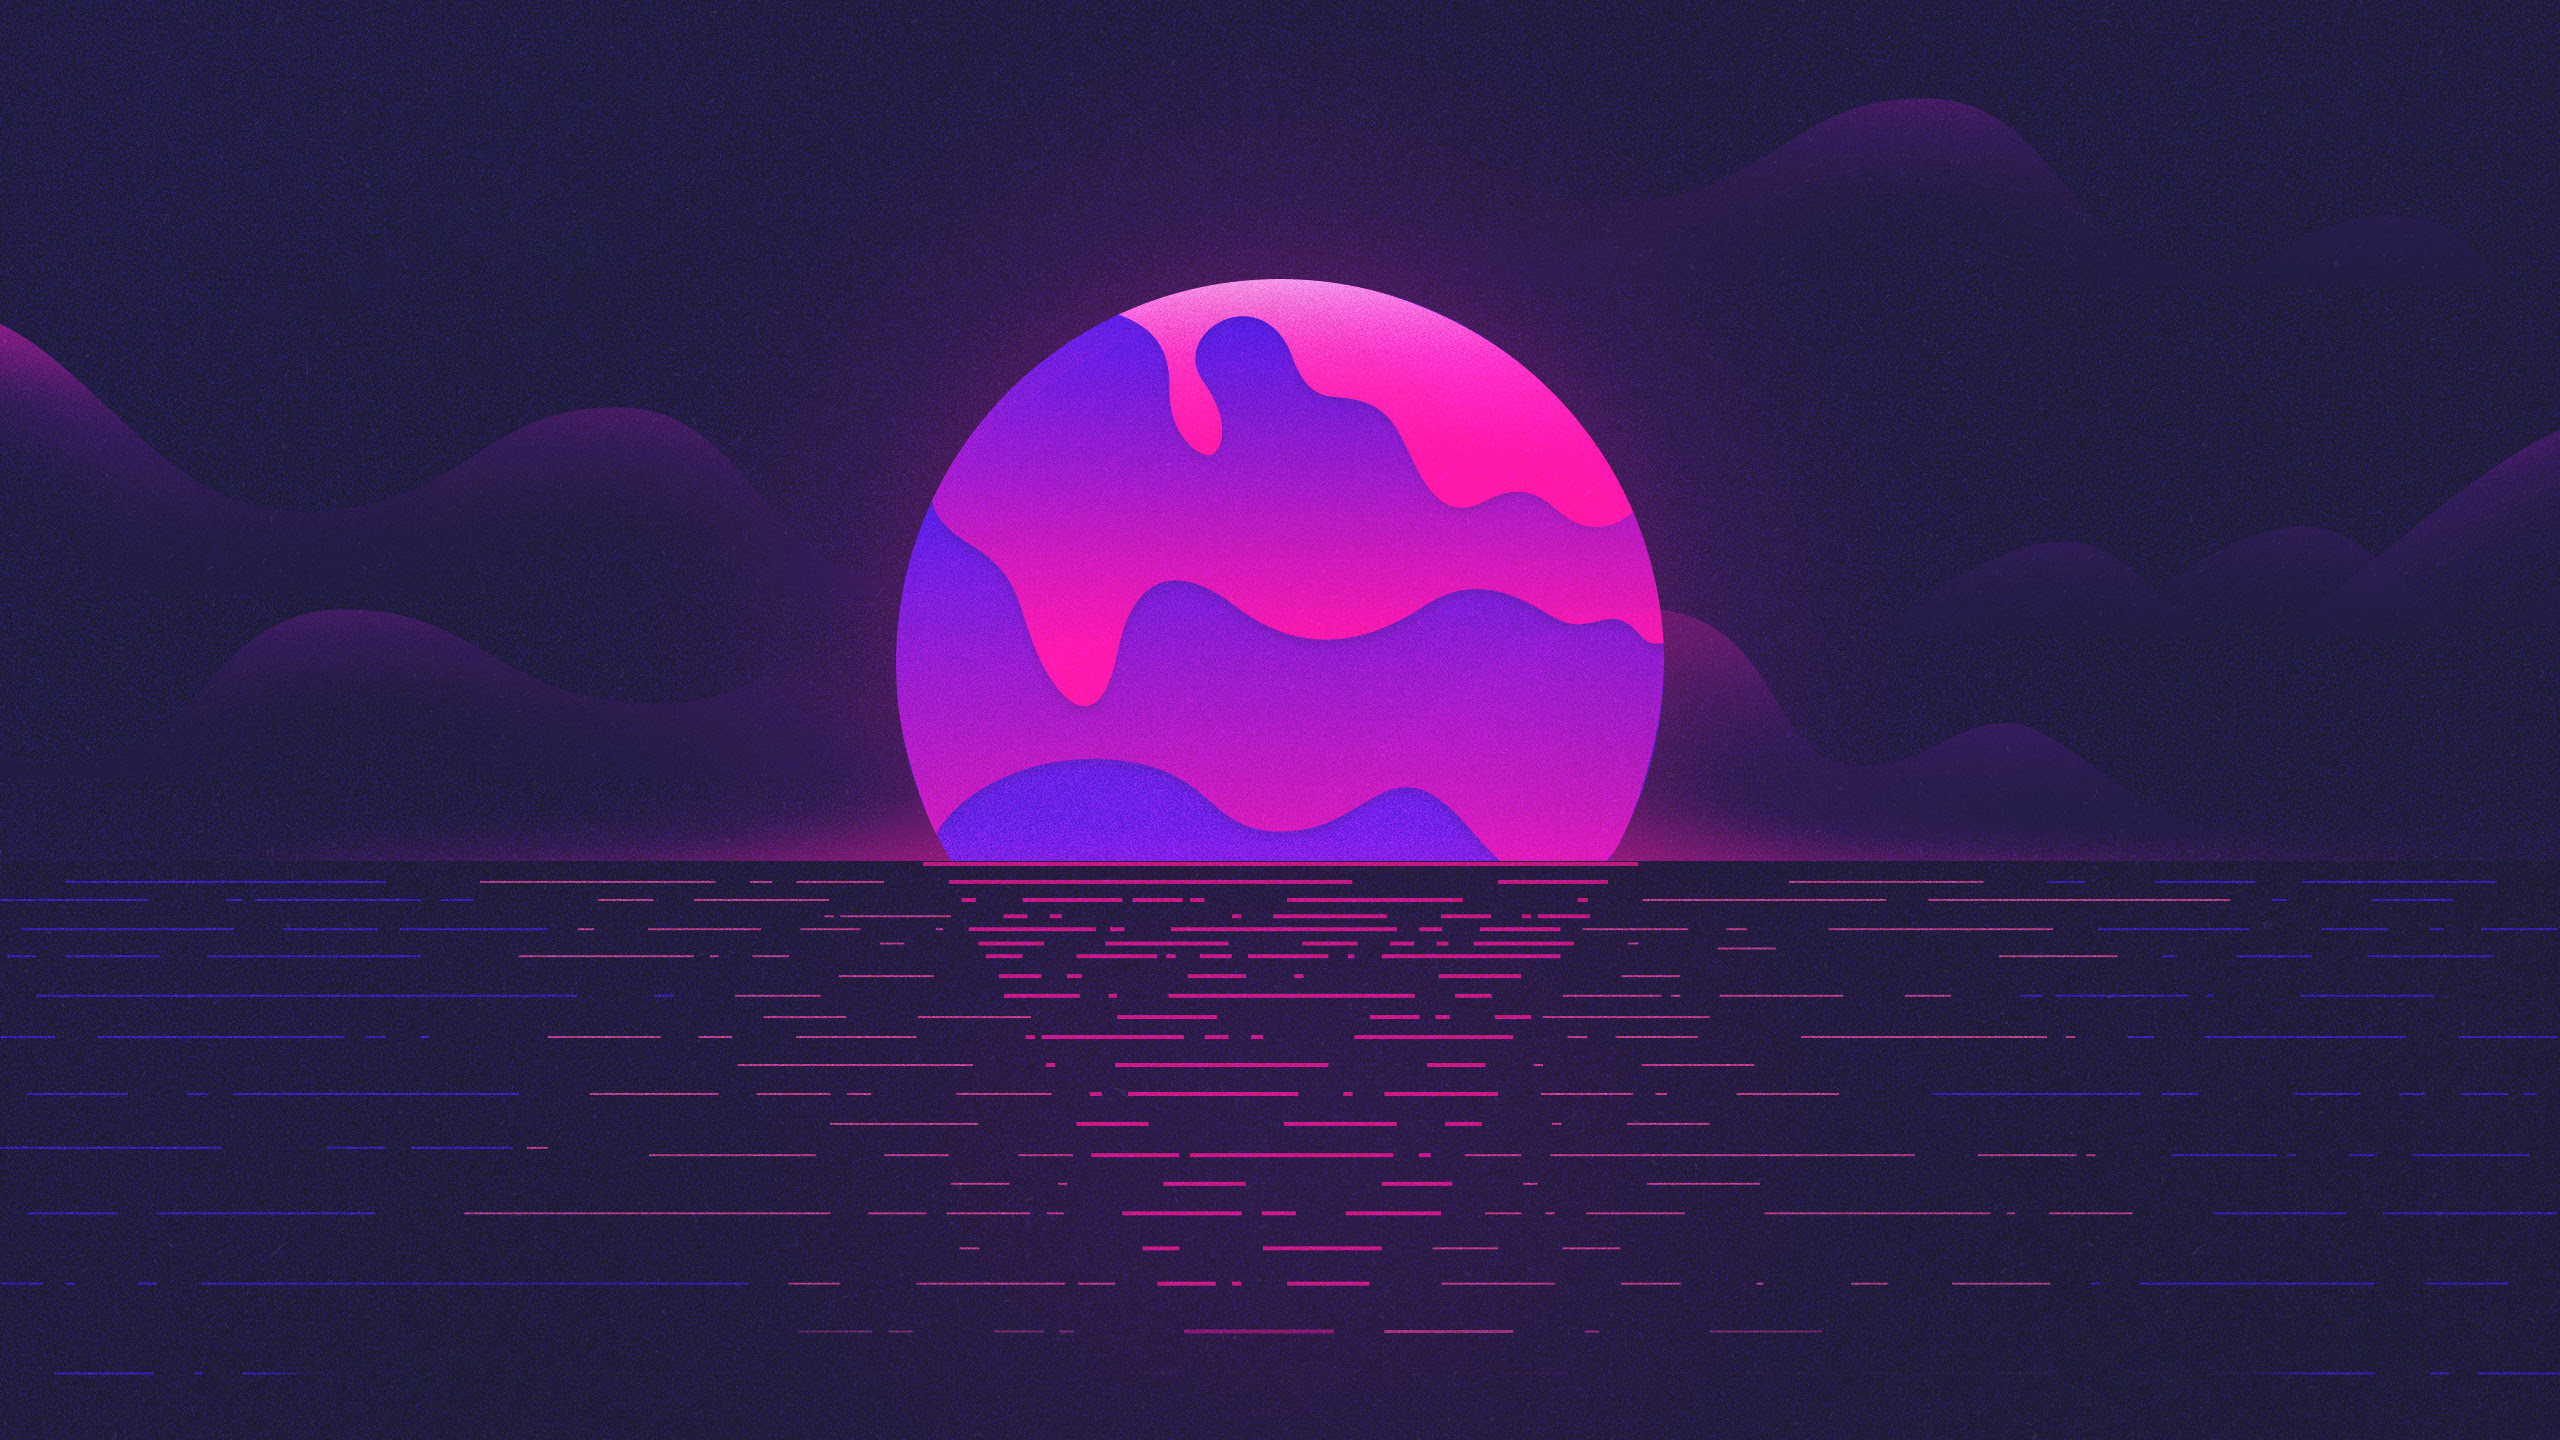 Purple Moon Wallpapers Hd Wallpapers